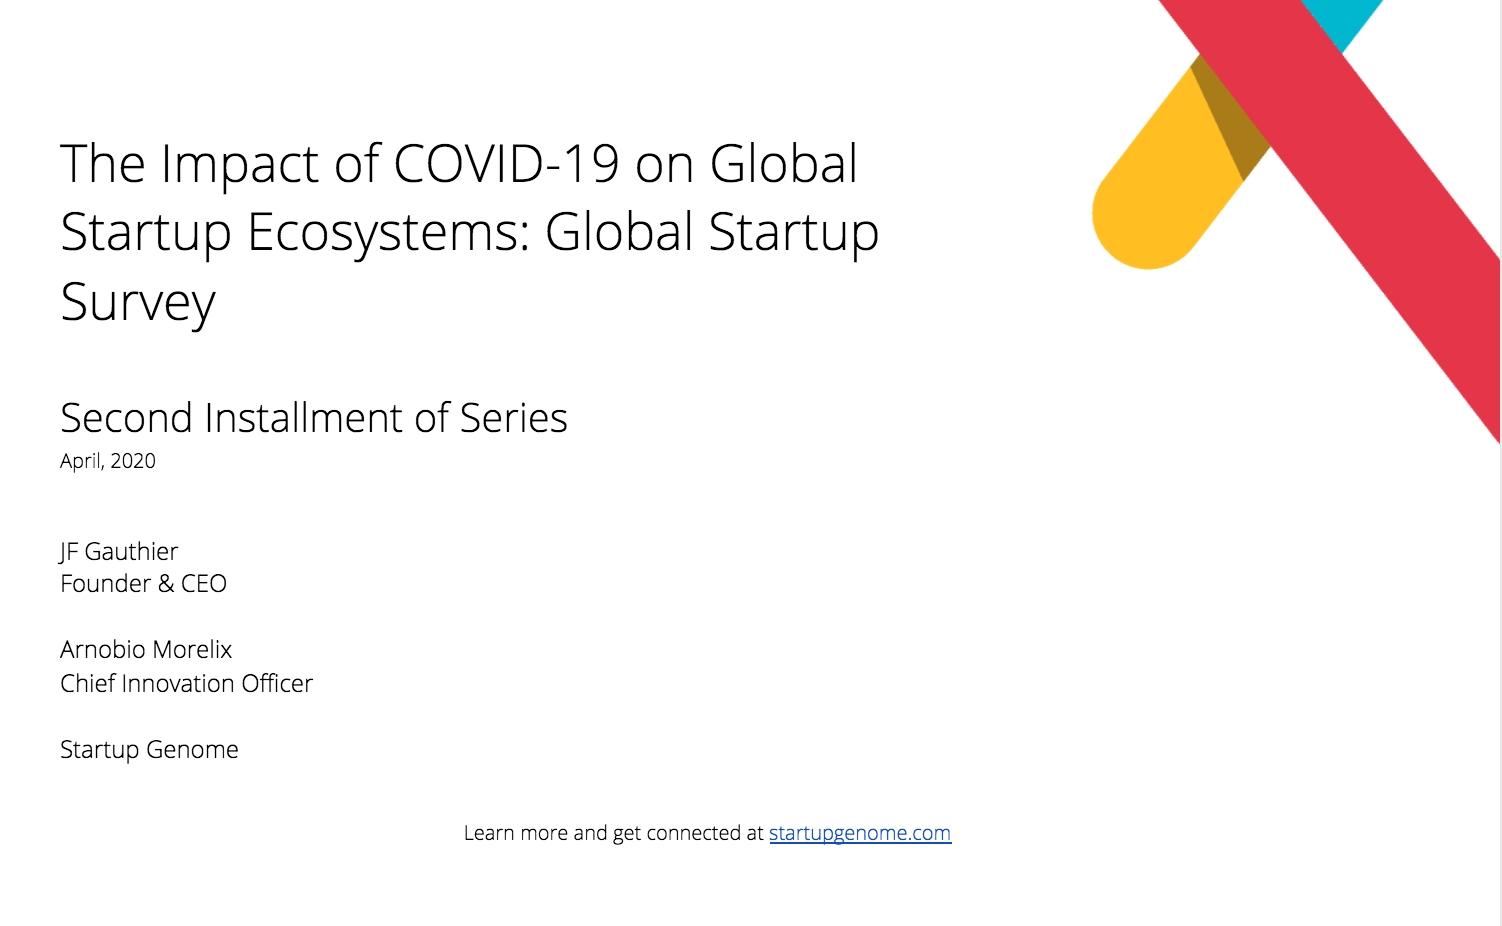 The Impact of COVID-19 on Global Startup Ecosystems: Global Startup Survey